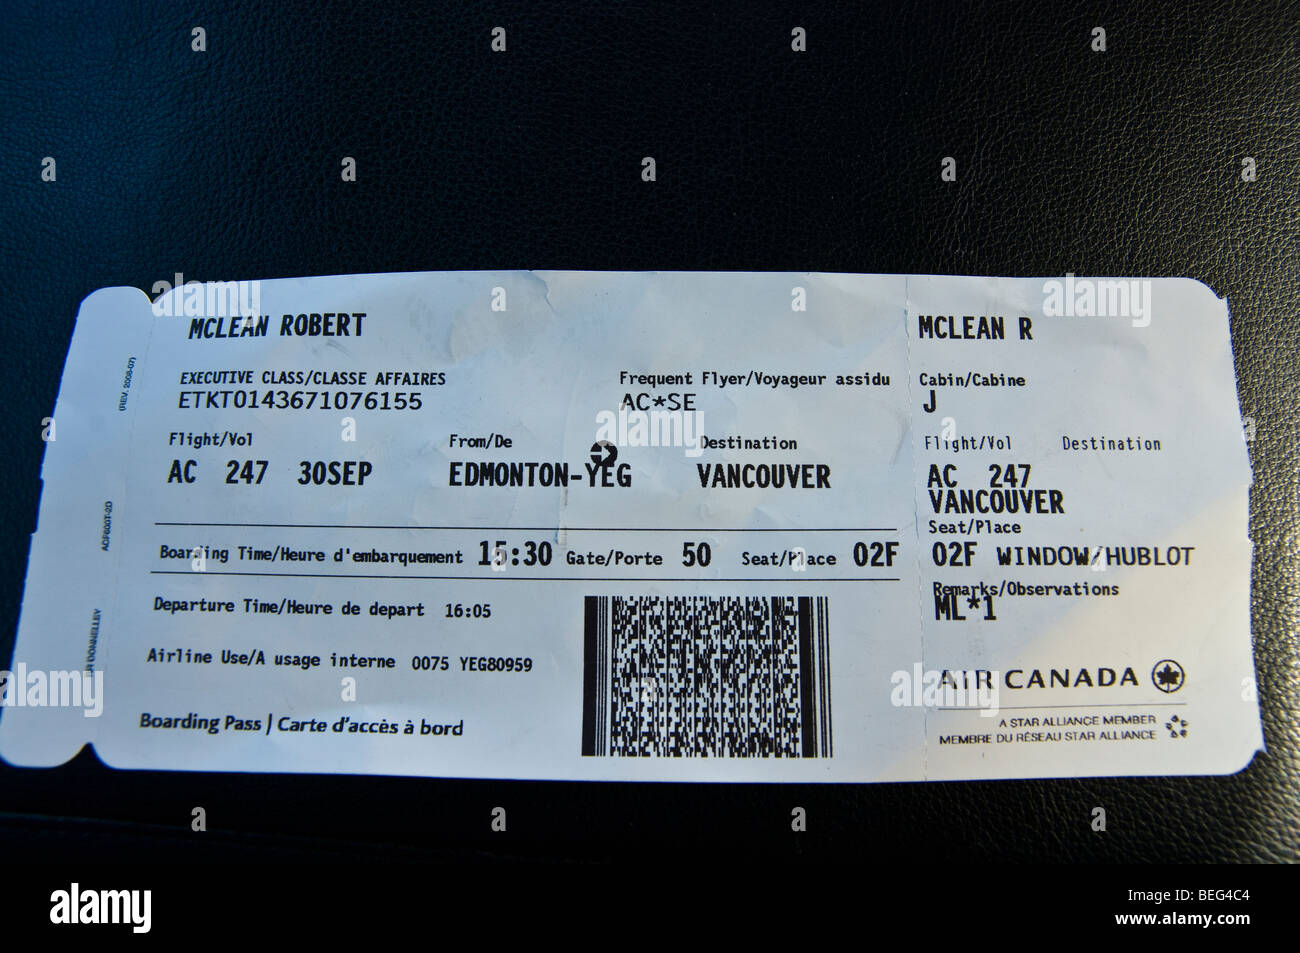 AIR CANADA PLANE TICKET Stock Photo